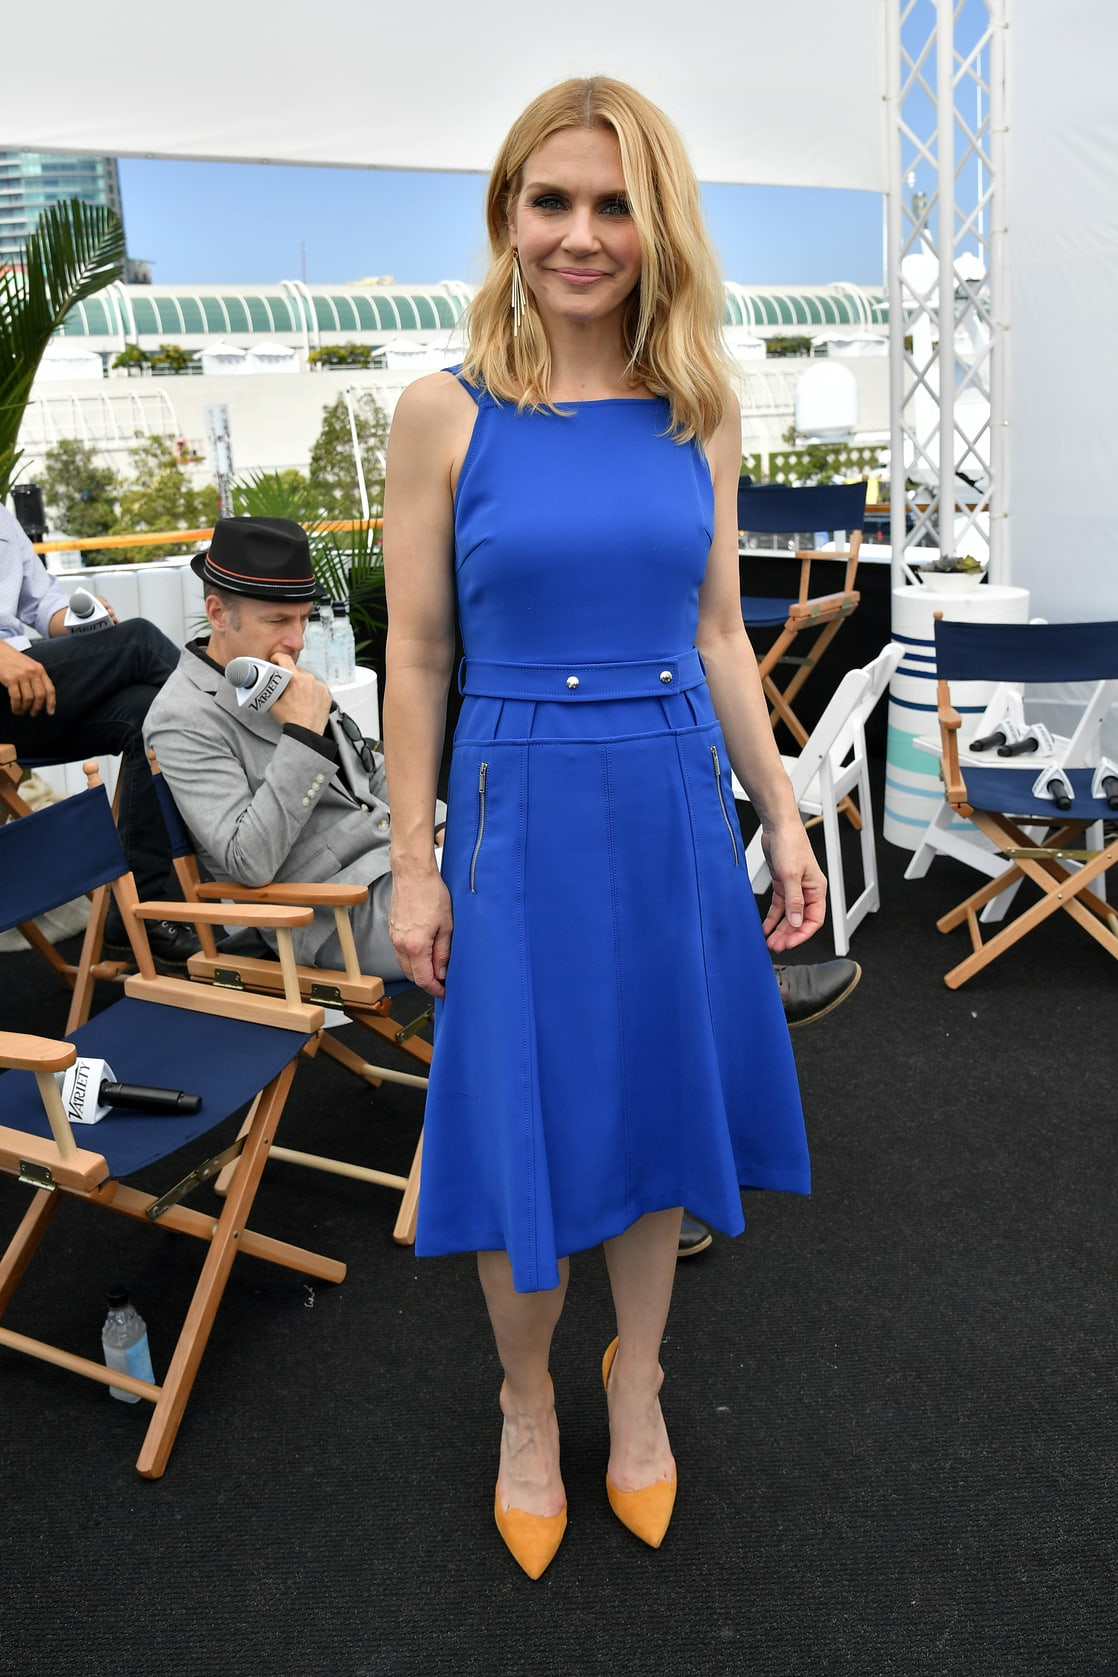 60+ Hot Pictures Of Rhea Seehorn Are Just Too Damn Sexy